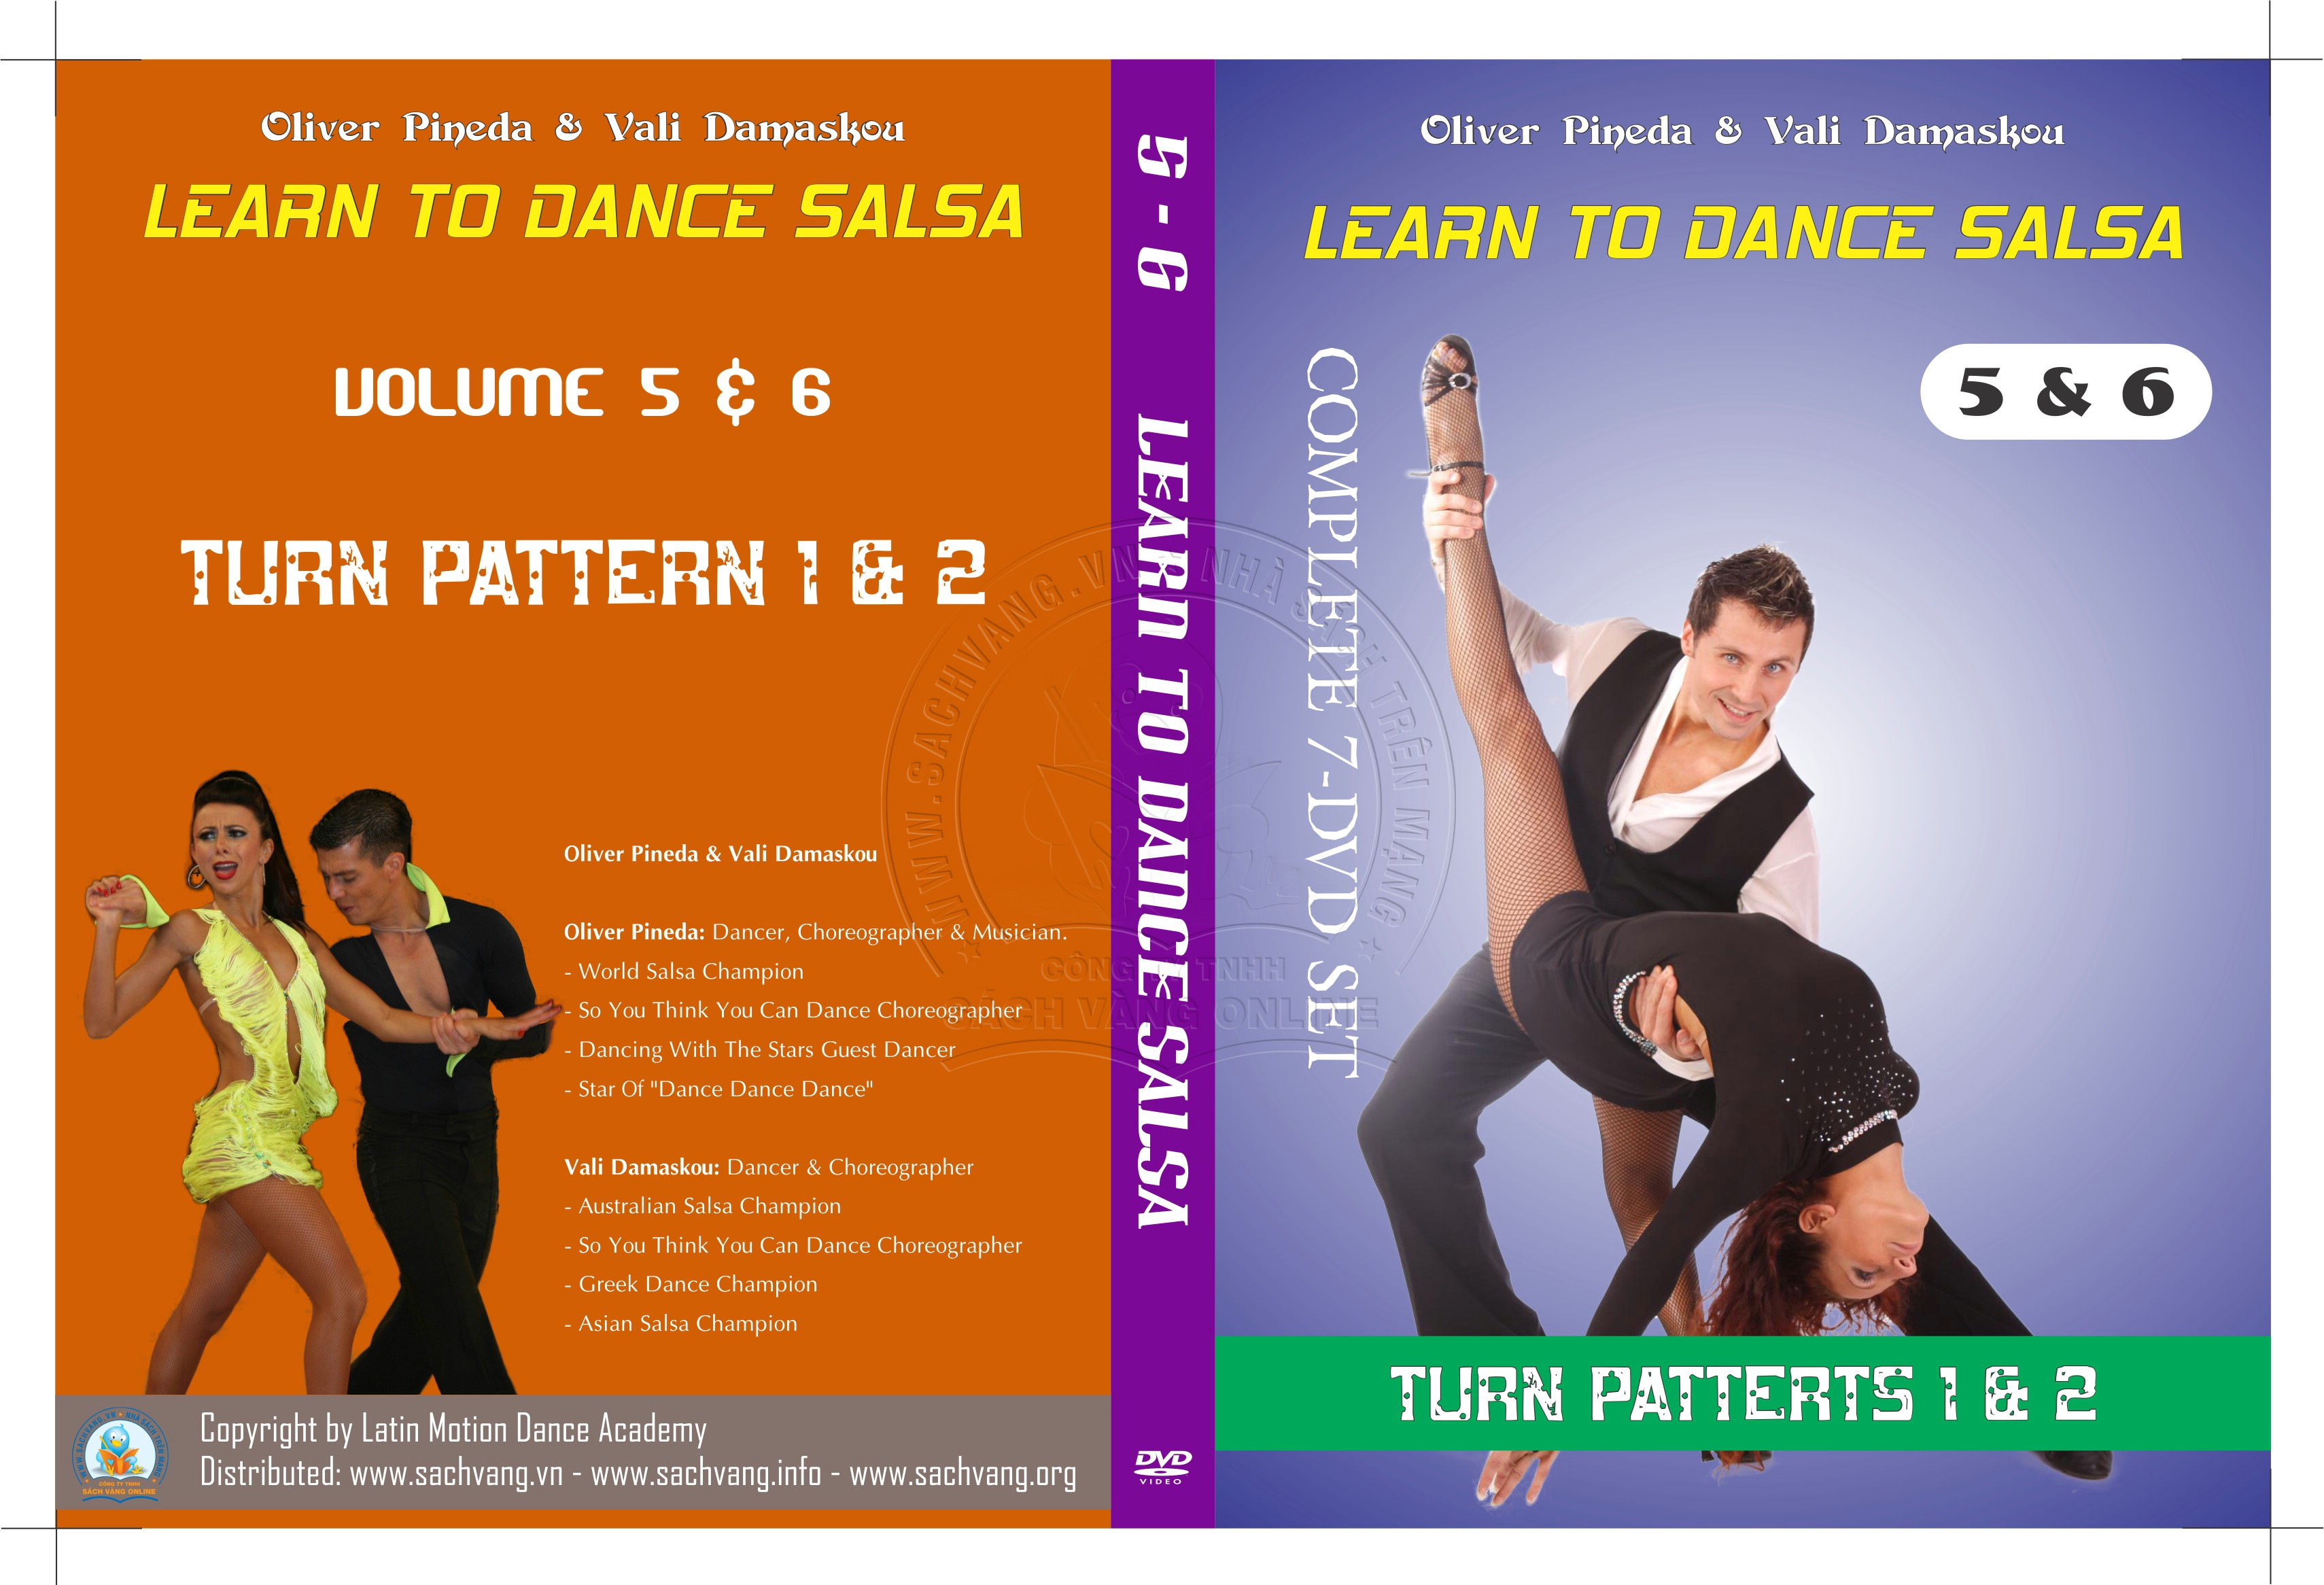 Learn To Dance Salsa with Oliver Pineda & Vali Damaskou 3